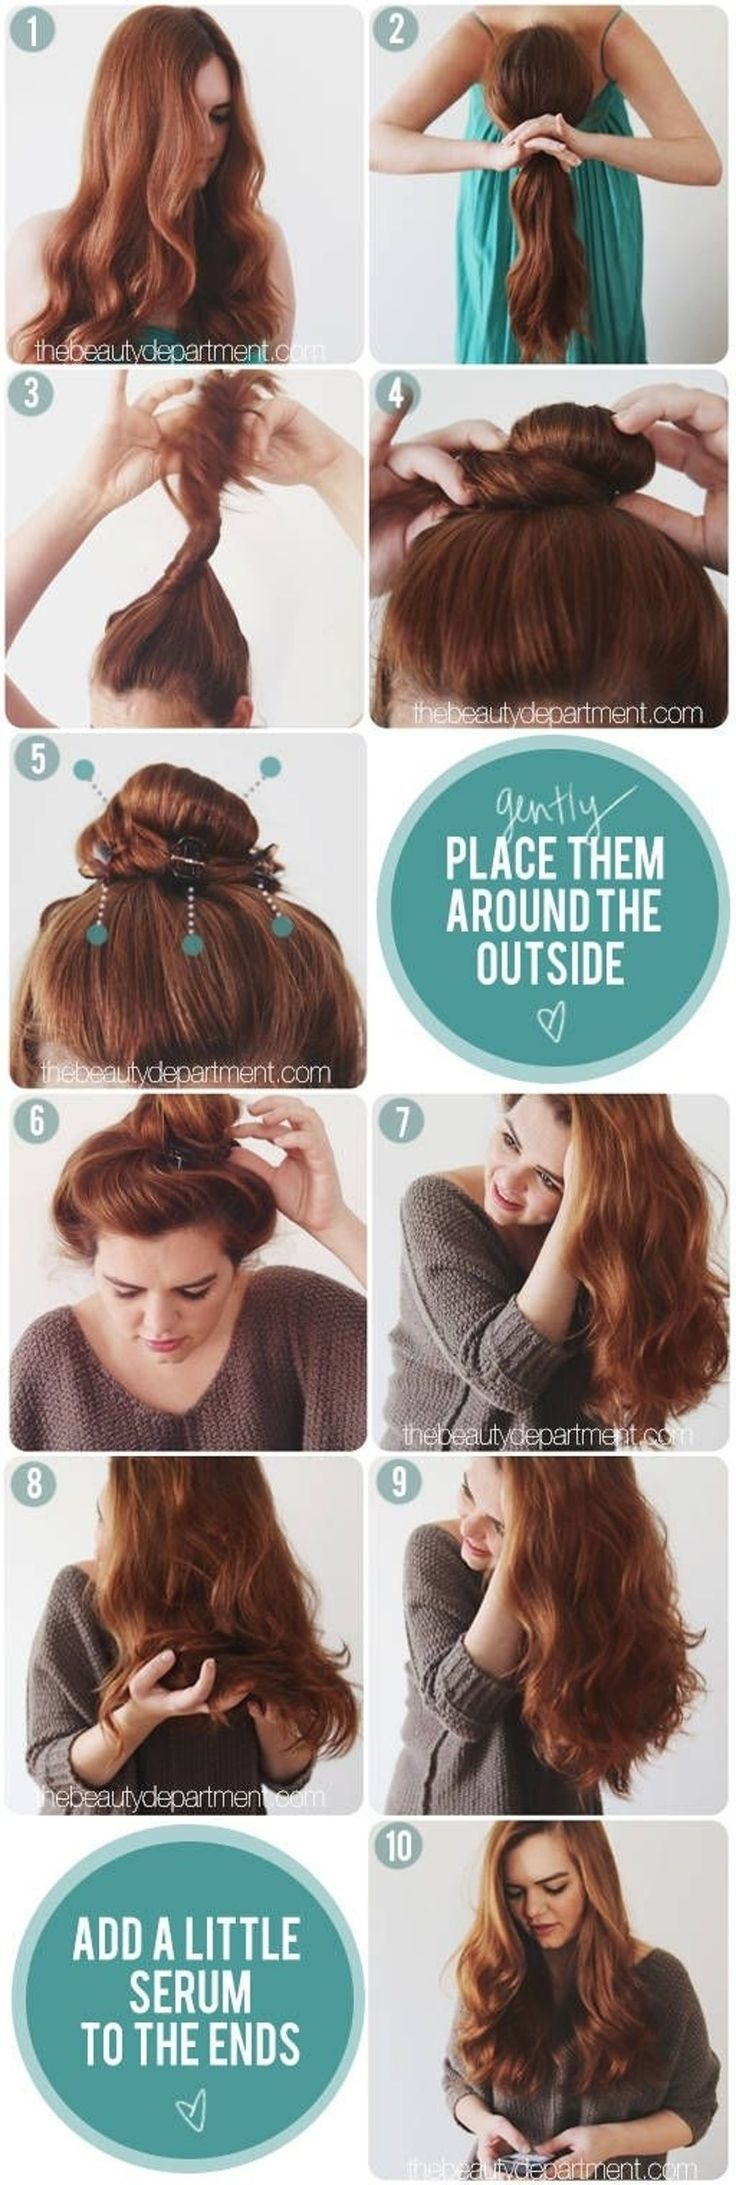 32. #KEEPING YOUR WAVES #OVERNIGHT - 34 Honestly Good #Heatless Hairstyles to Try out ... → Hair #Curls